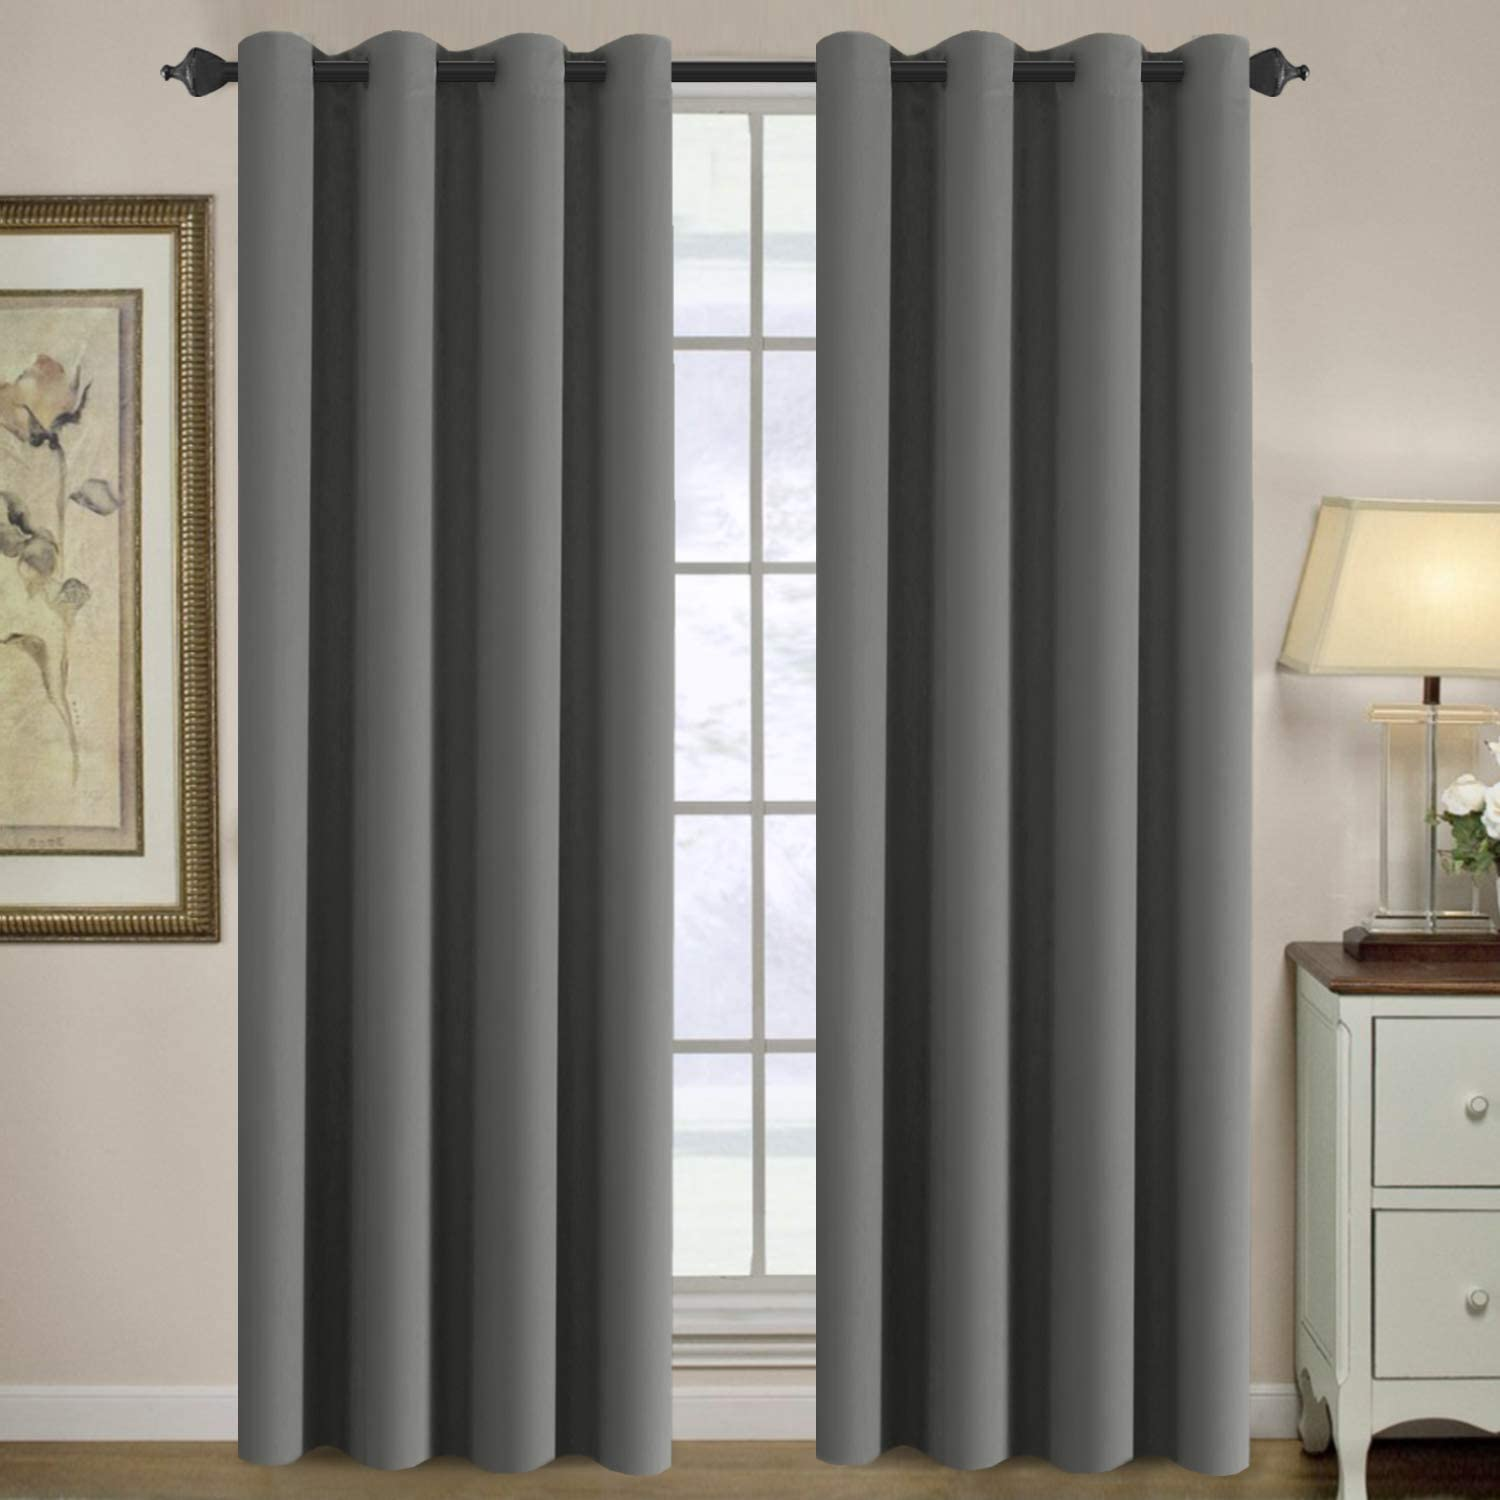 H.VERSAILTEX Blackout Curtain for Living Room Thermal Insulated Window Treatment Curtain Extra Long 108 inch Length Energy Saving Solid Grommet Top Blackout Drape, One Panel, Grey